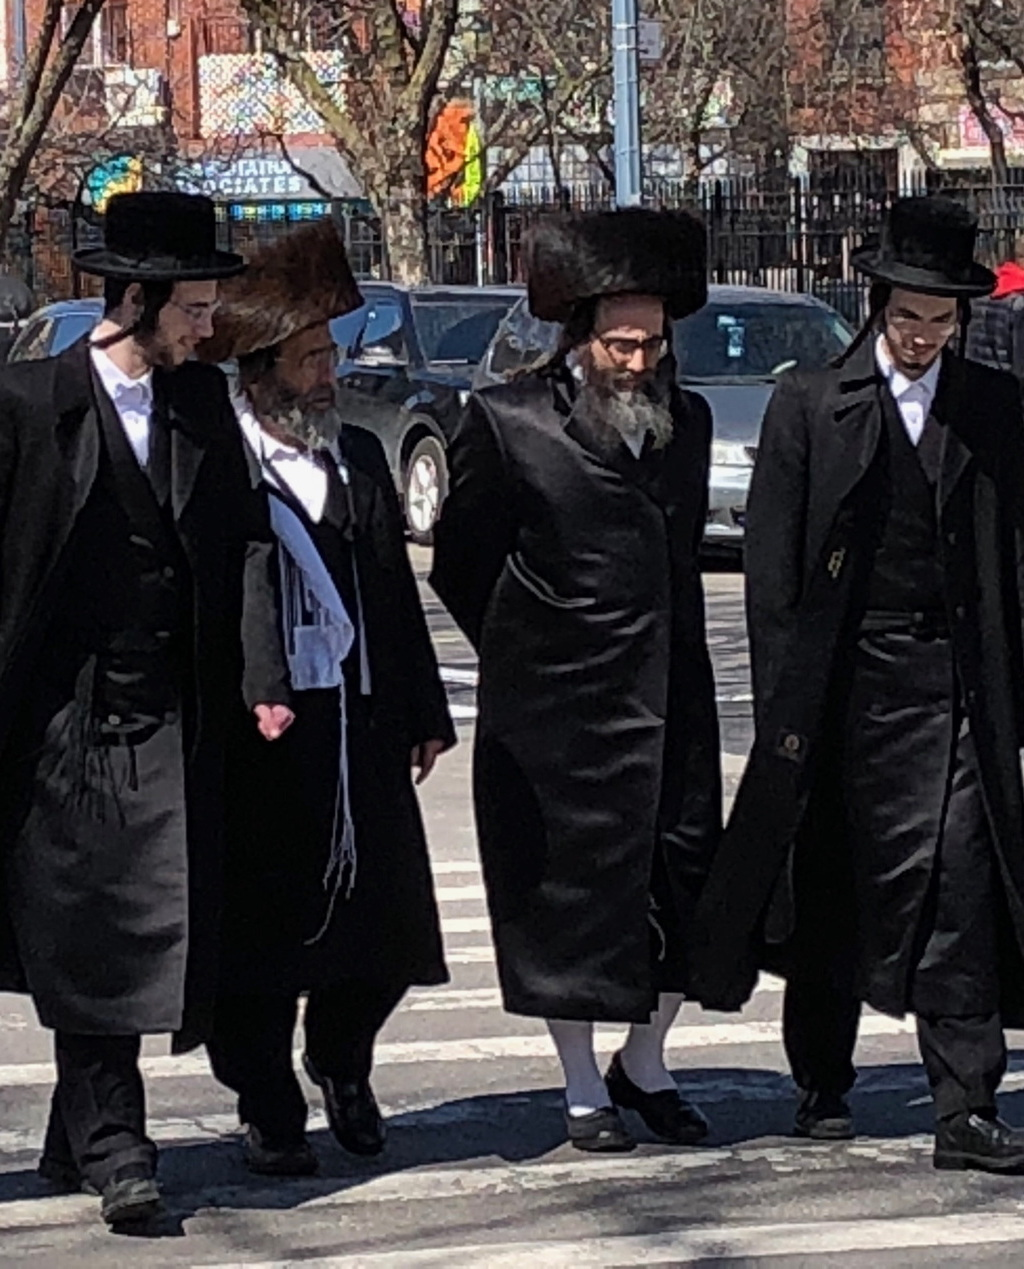 The Hassidic Jewish neighborhood